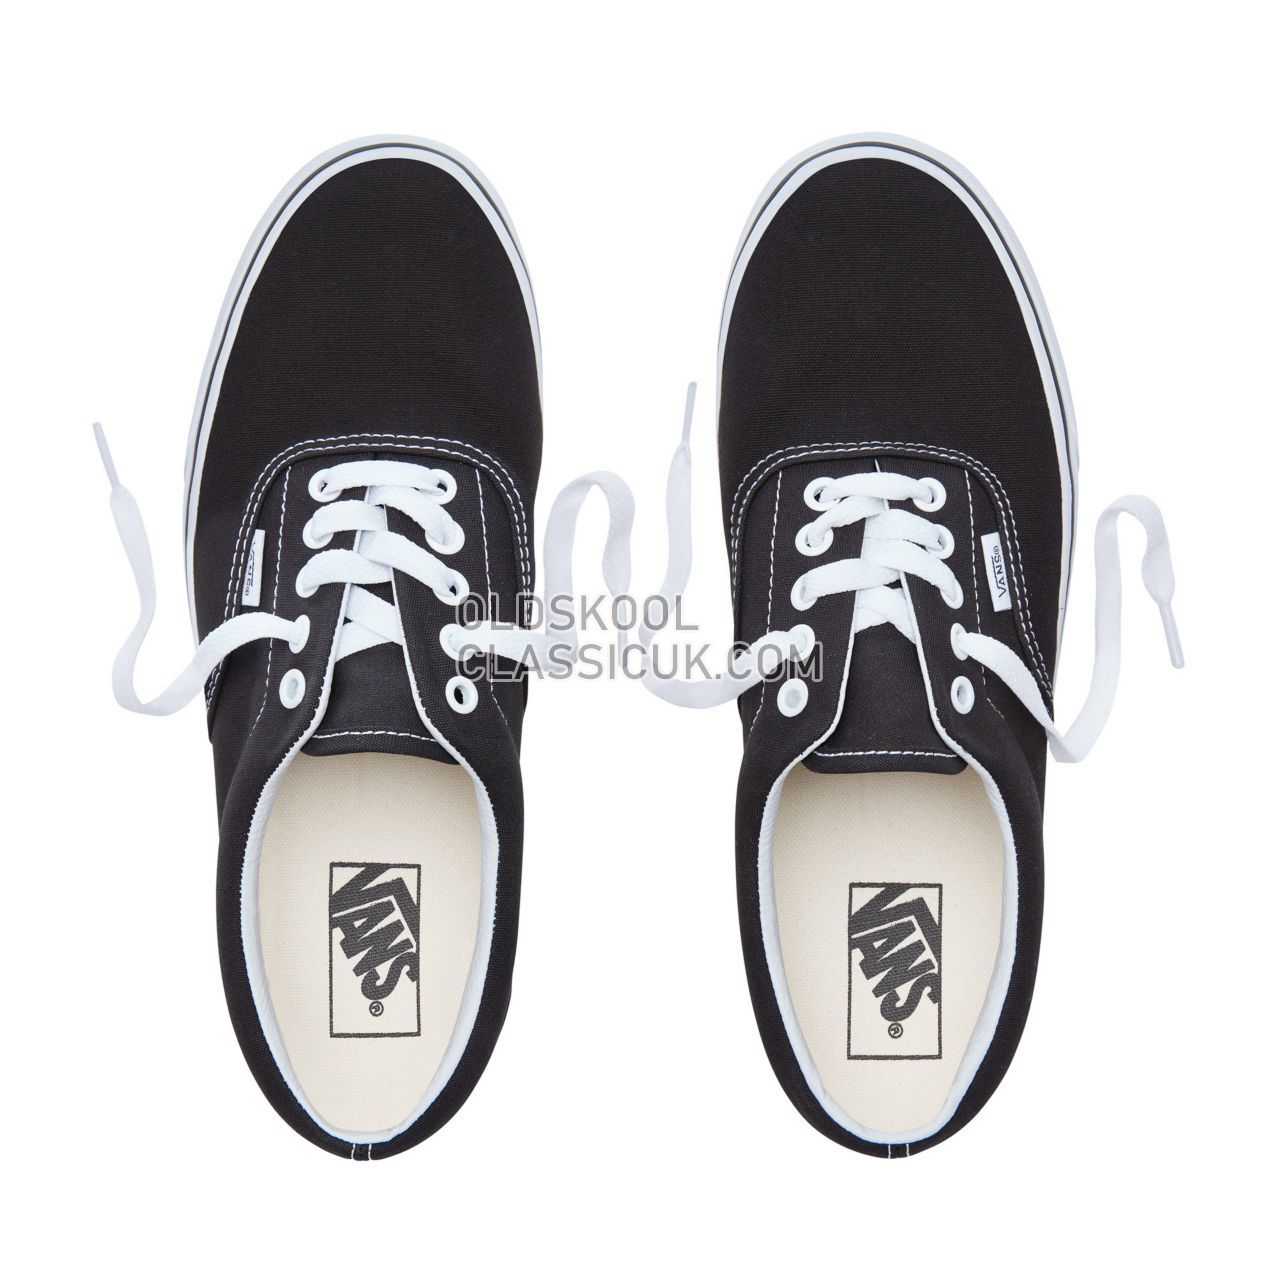 Vans Era Sneakers Mens Black VN000EWZBLK Shoes